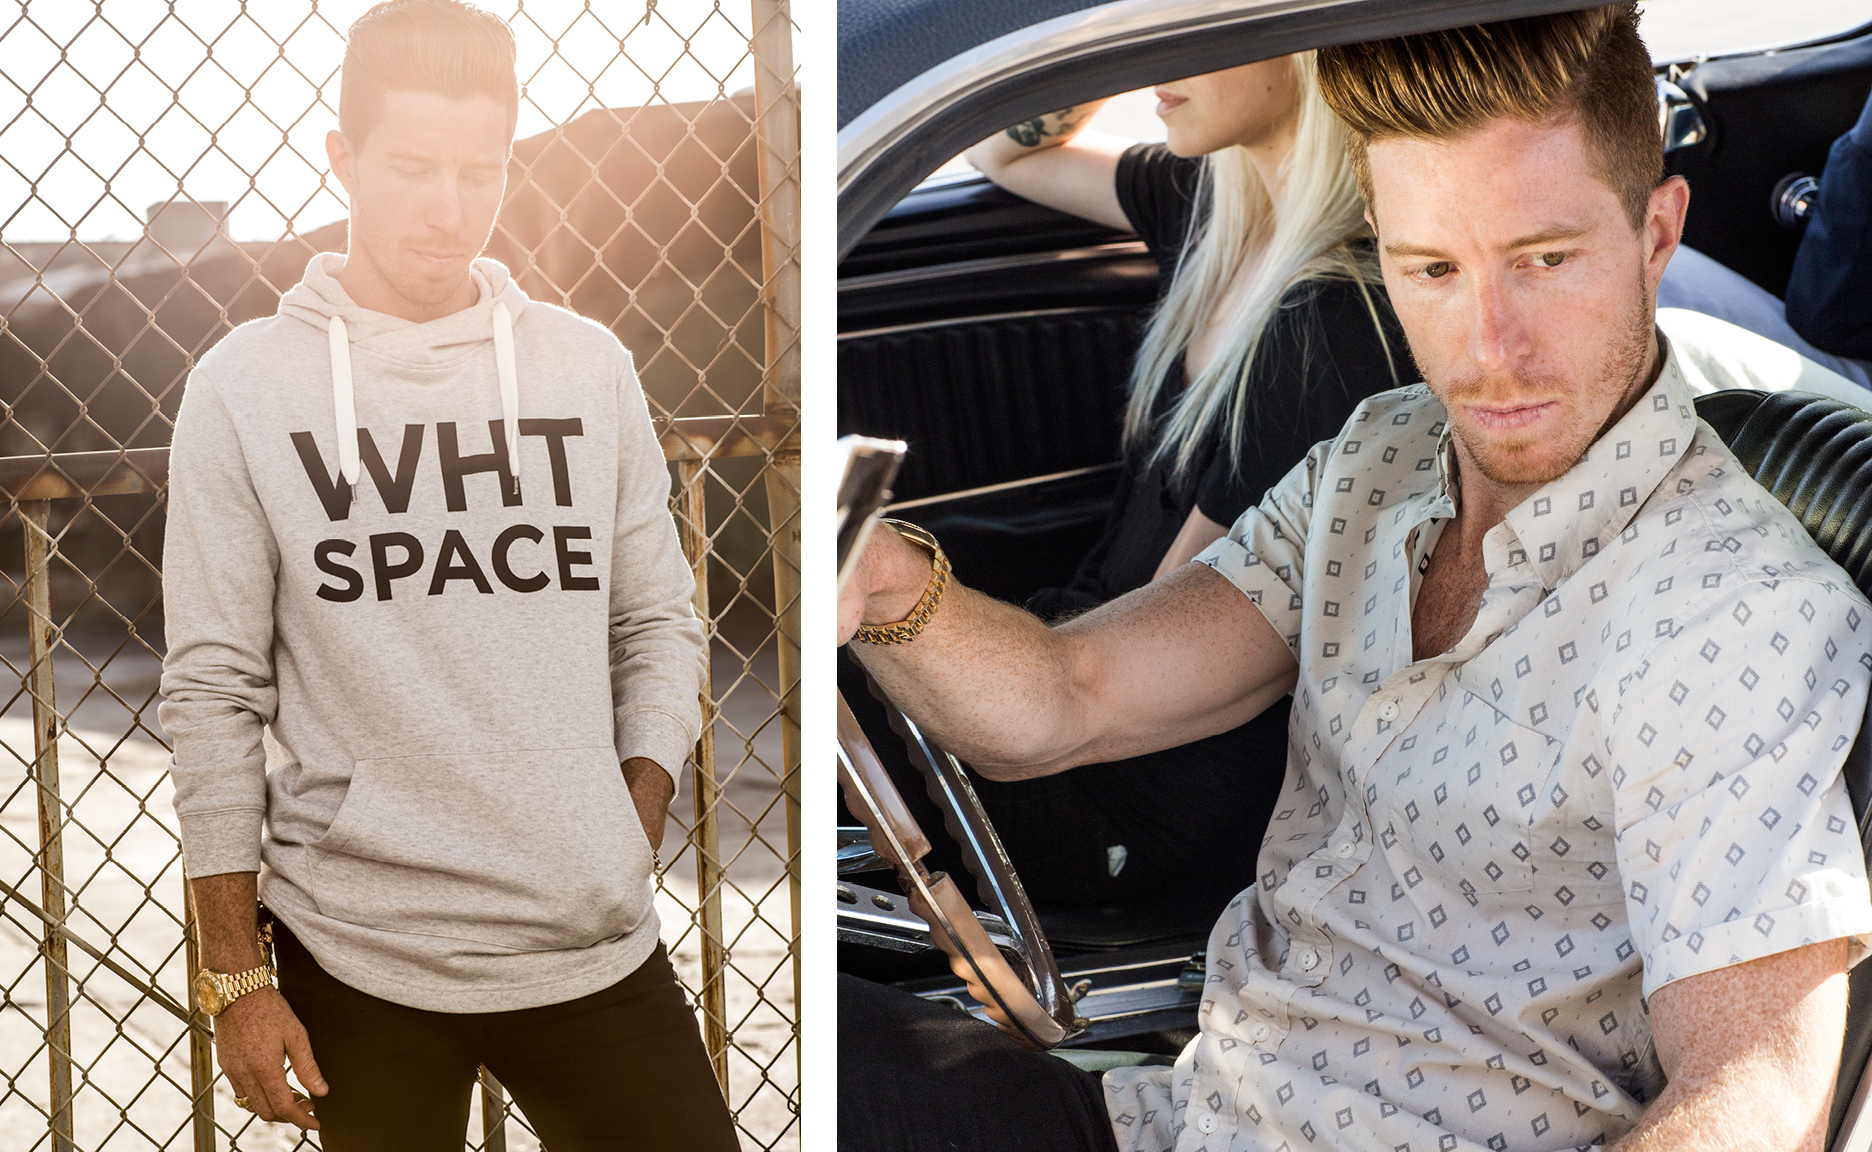 The WHT SPACE hoodie is the best summer and fall sweater and was designed by Shaun White